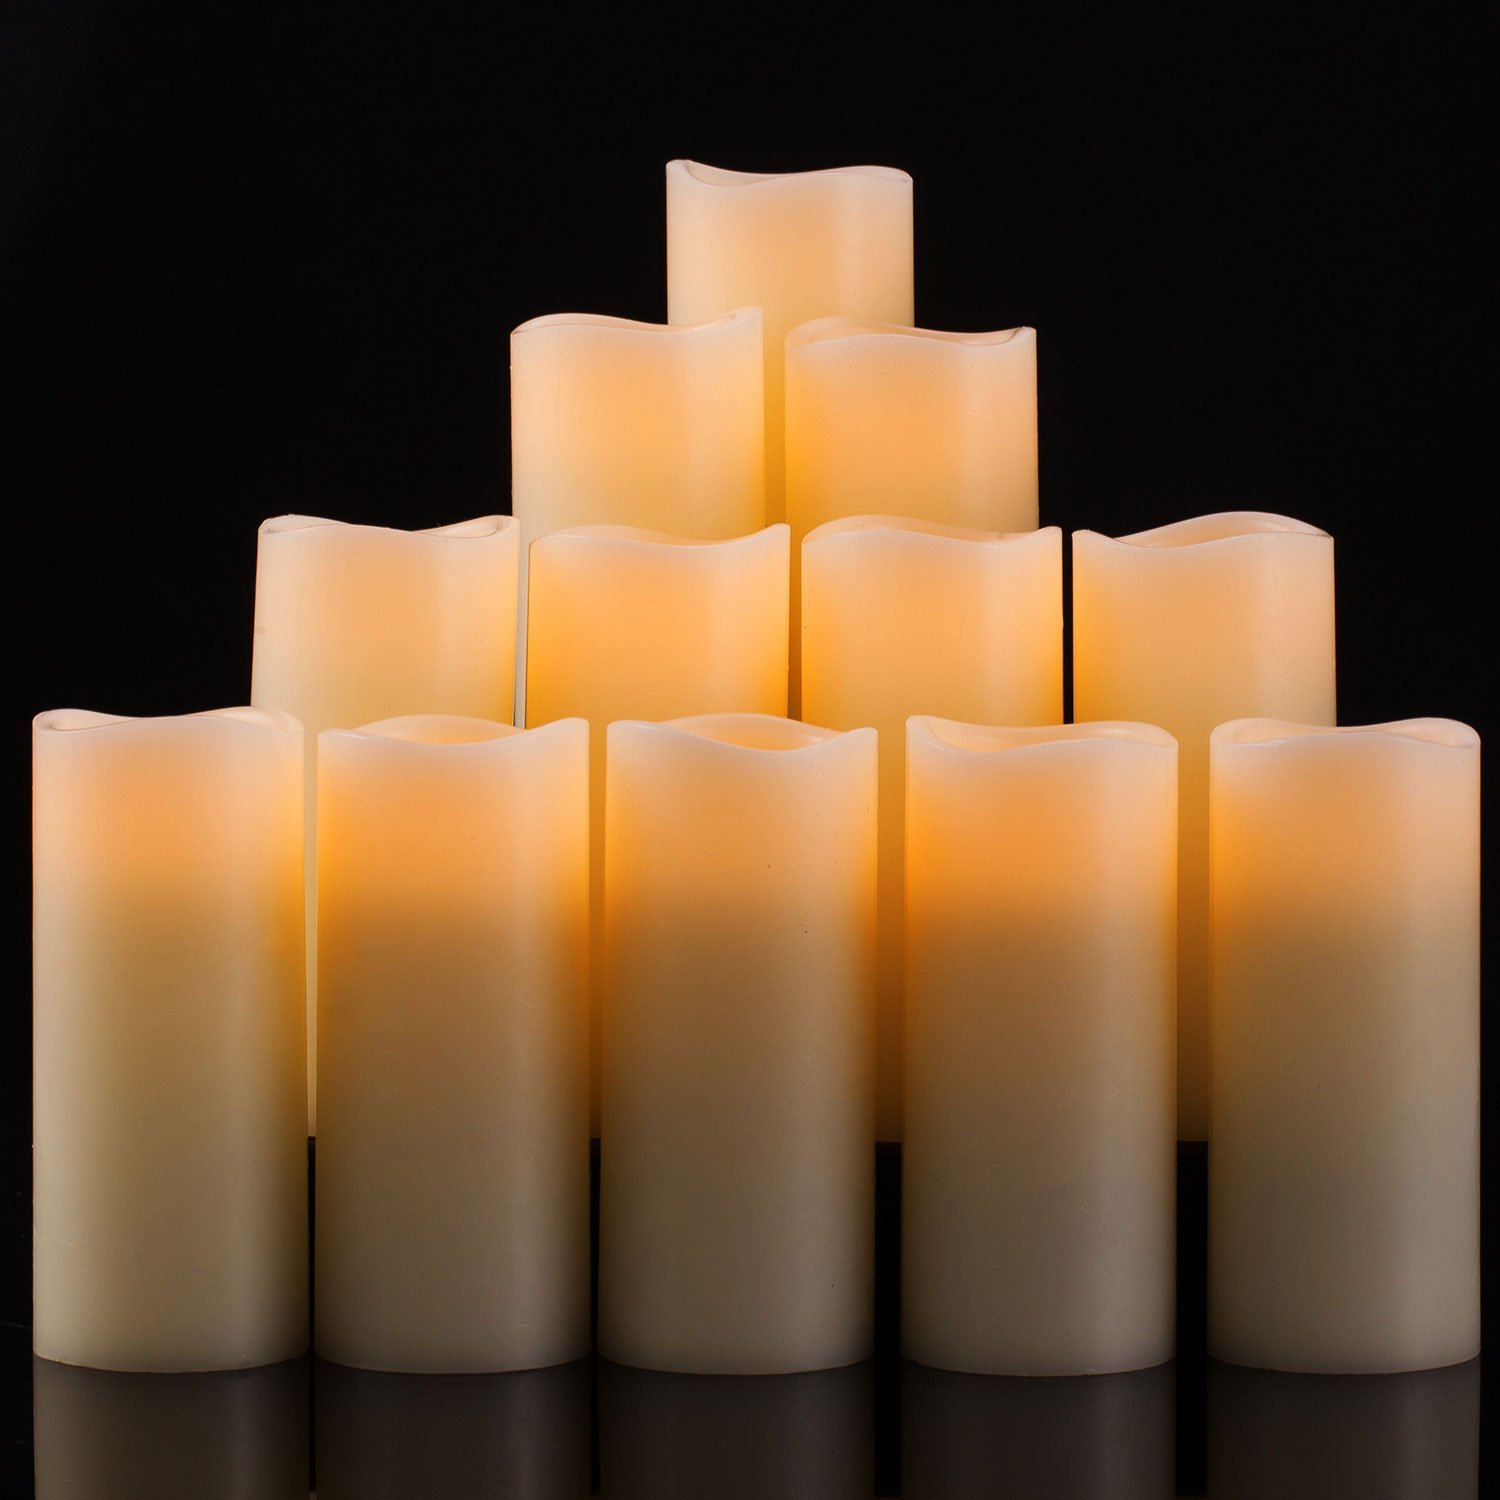 Enpornk Set of 12 Flameless Candles Battery Operated LED Pillar Real Wax Flickering Electric Unscented Candles with Remote Control Cycling 24 Hours Timer, Ivory Color by Enpornk (Image #2)